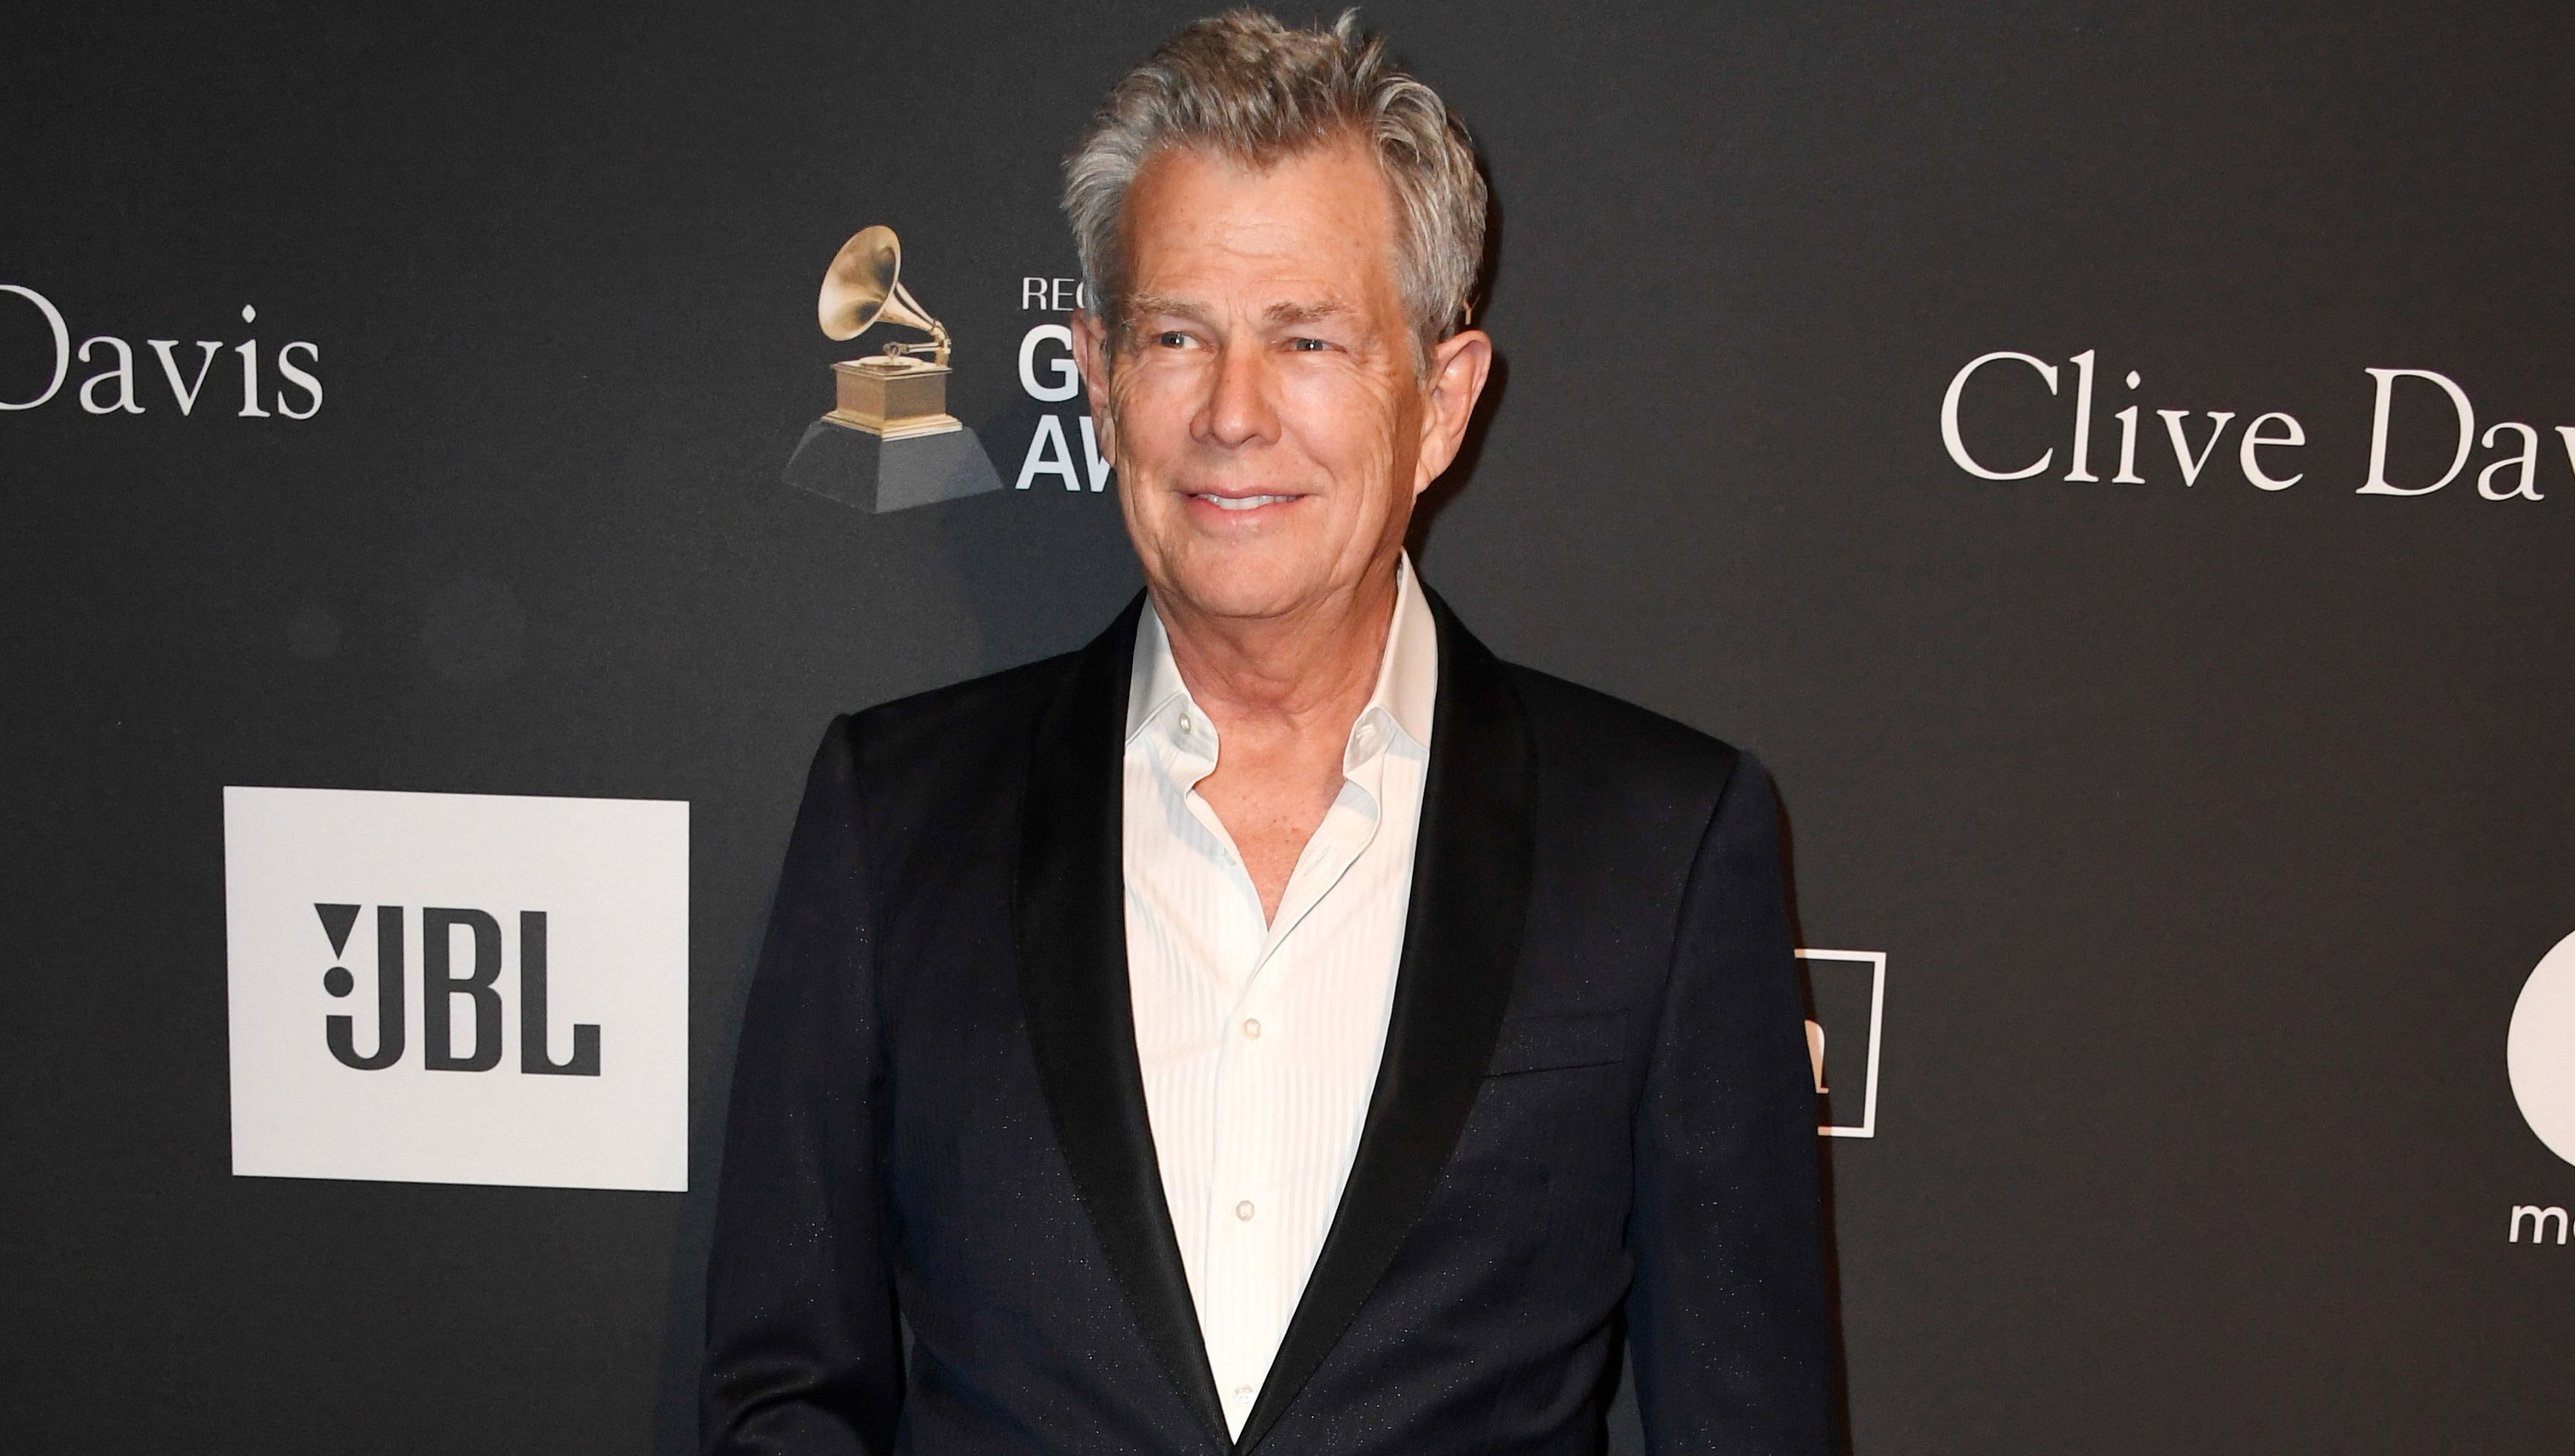 David Foster Pokes Fun at College Admissions Scam: 'I'd Be in Jail'